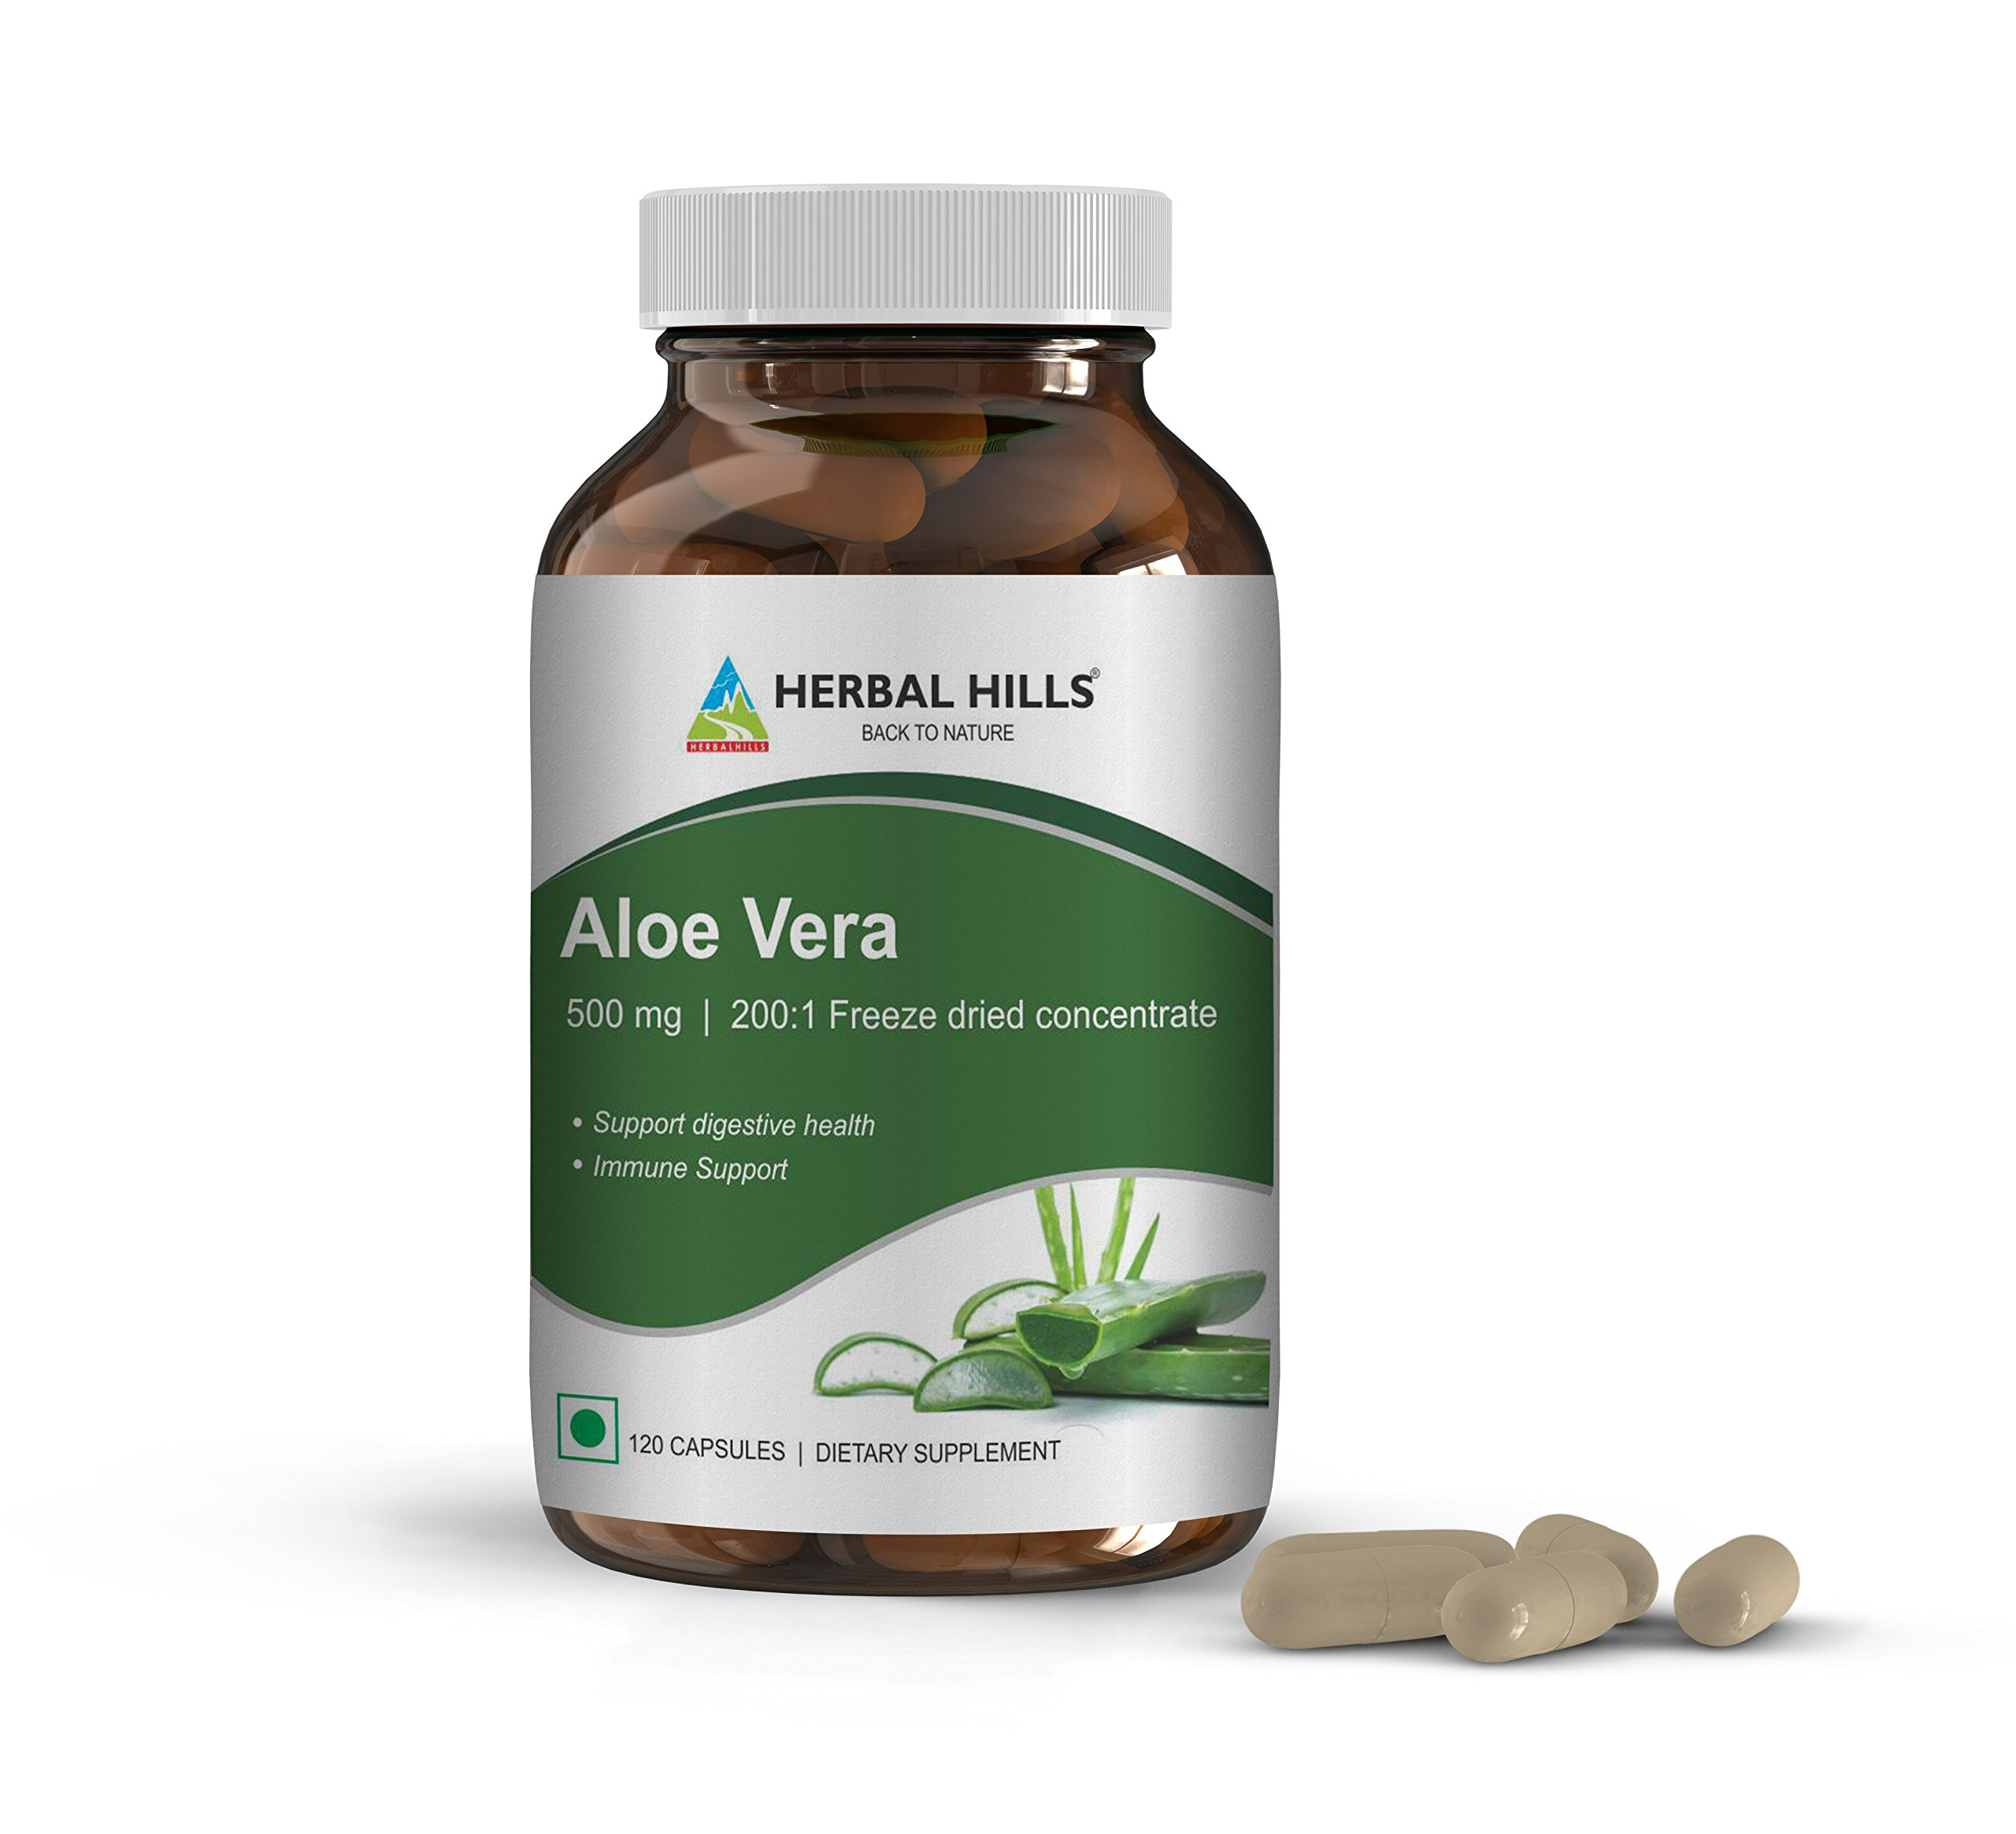 Herbal Hills Aloe Vera Capsules with Natural Aloe, Pure Aloe Freeze Dried Powder Supplement, high Concentration, Veggie 120 Aloe Vera Pills